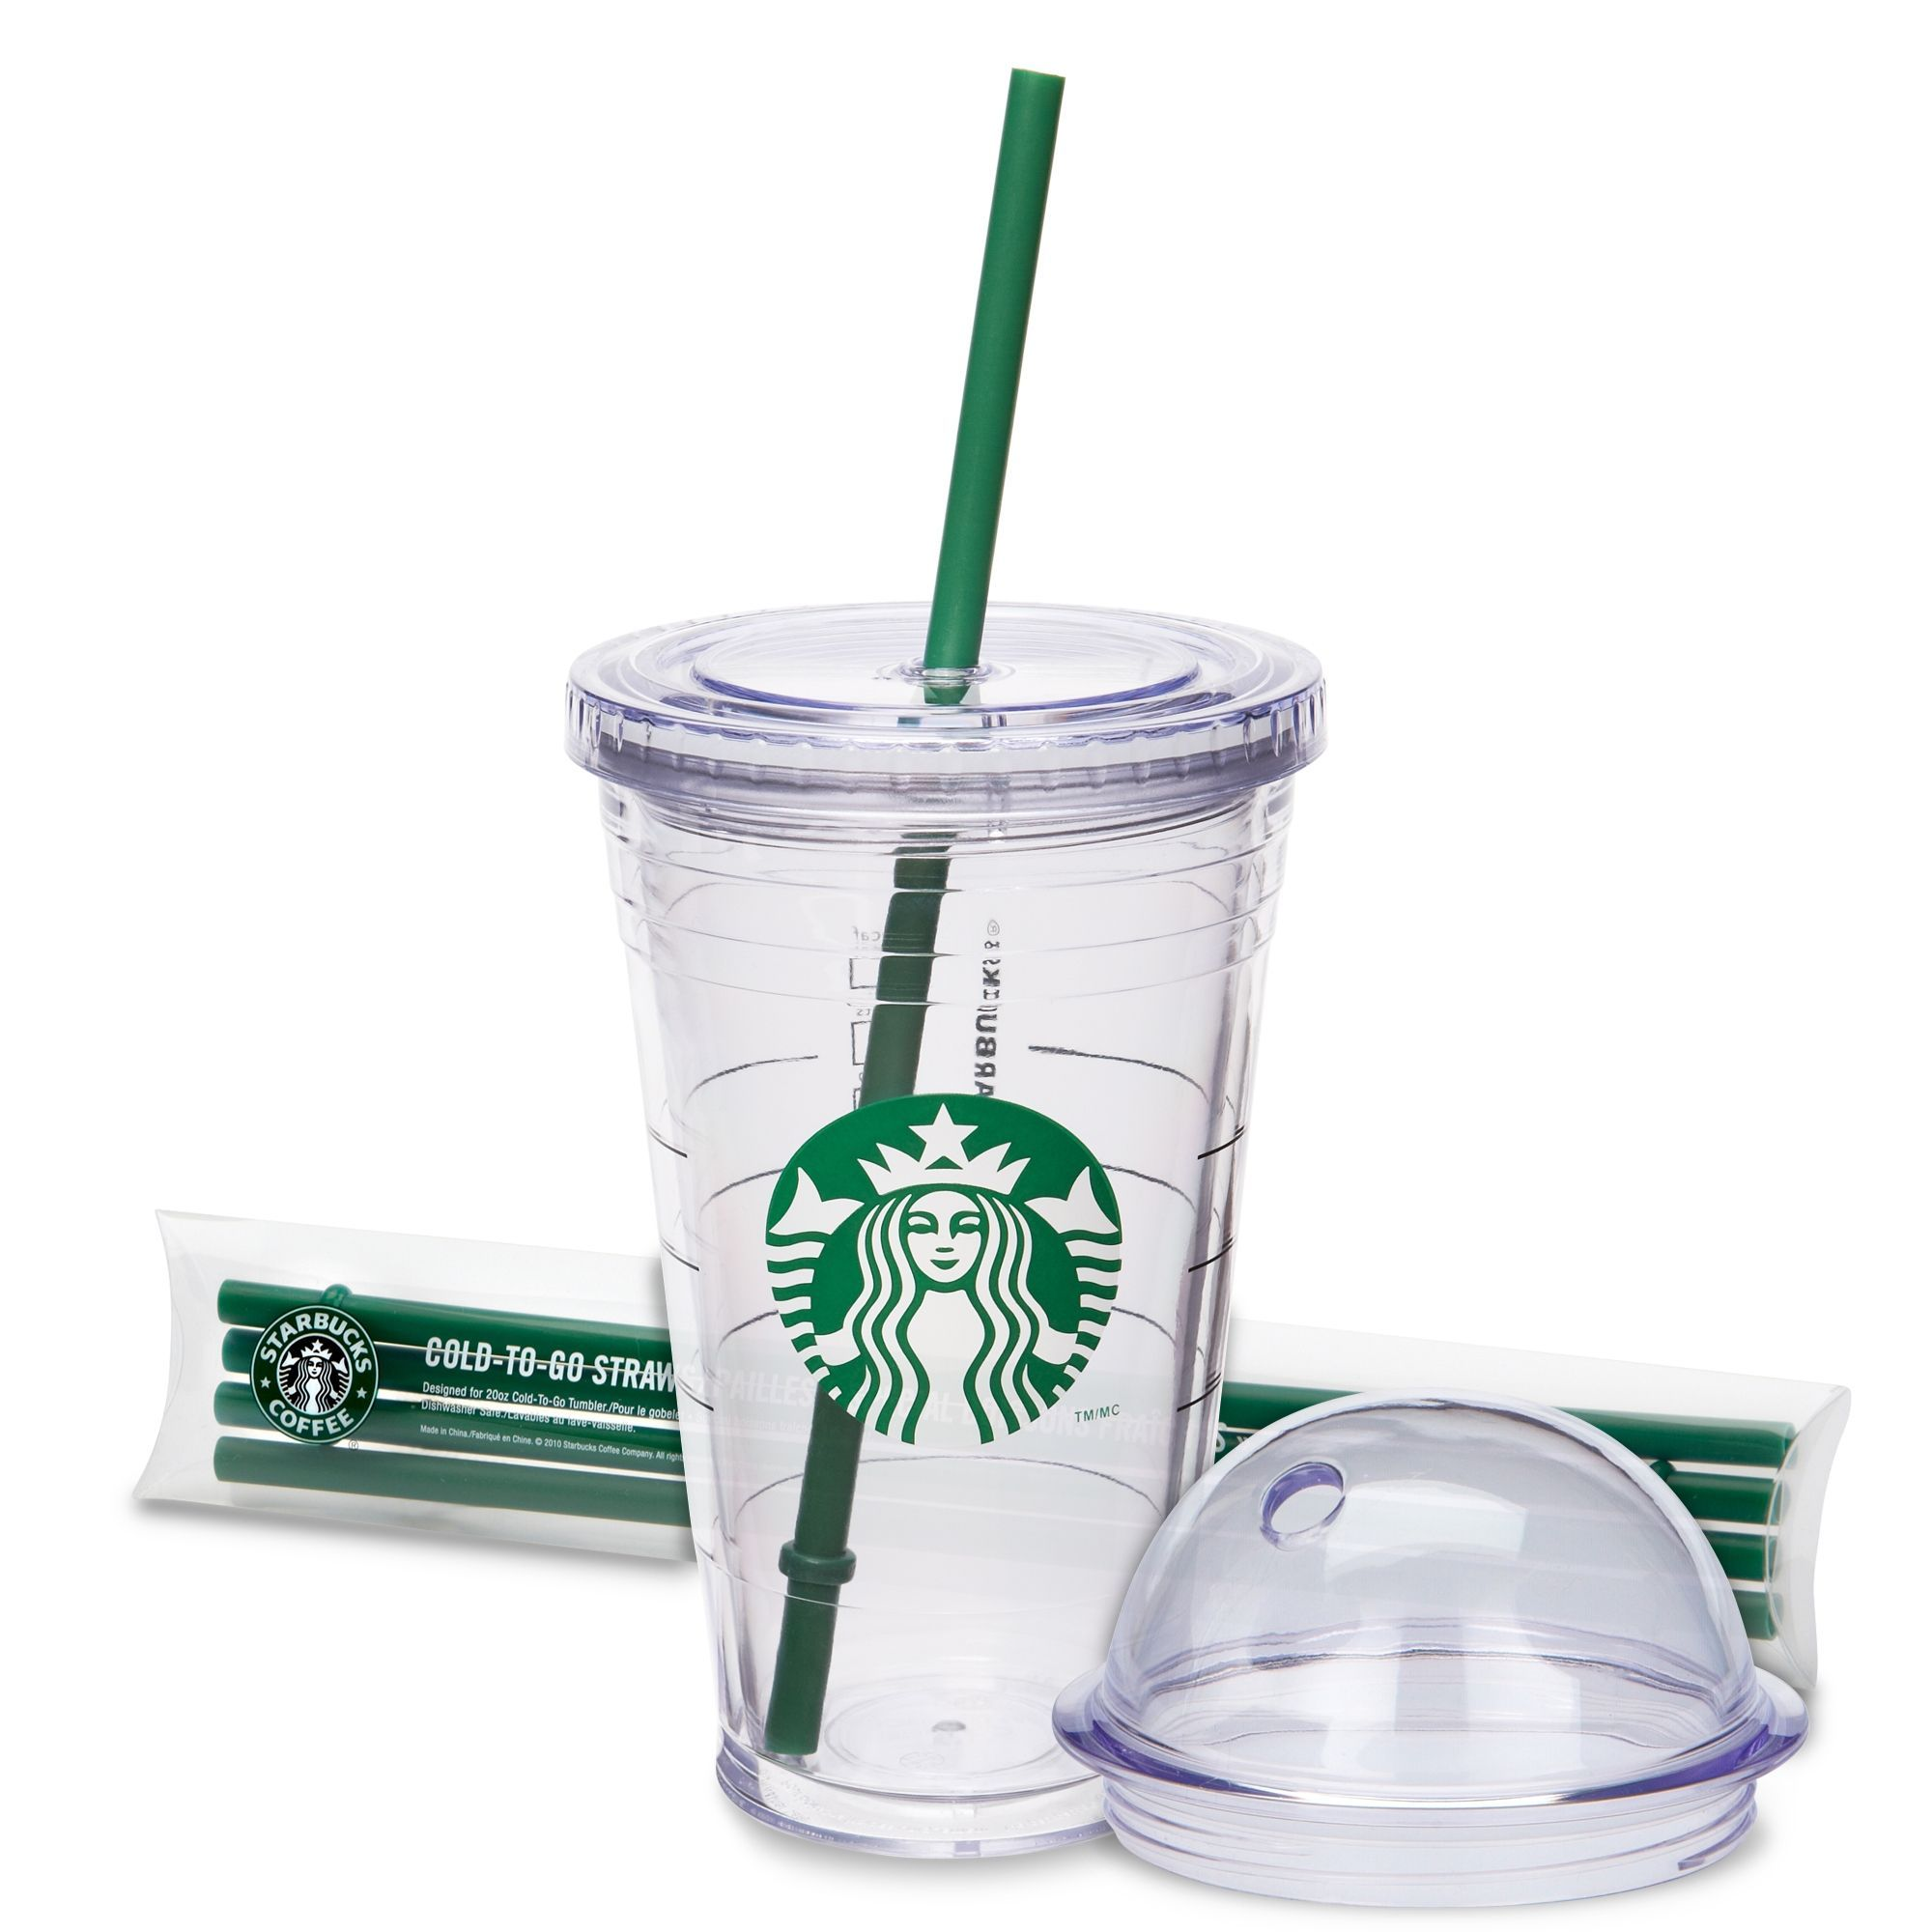 Cute Coffee Mugs With Lids 16 Oz Cold Cup Kit From Starbucks With Domed Lid And Set